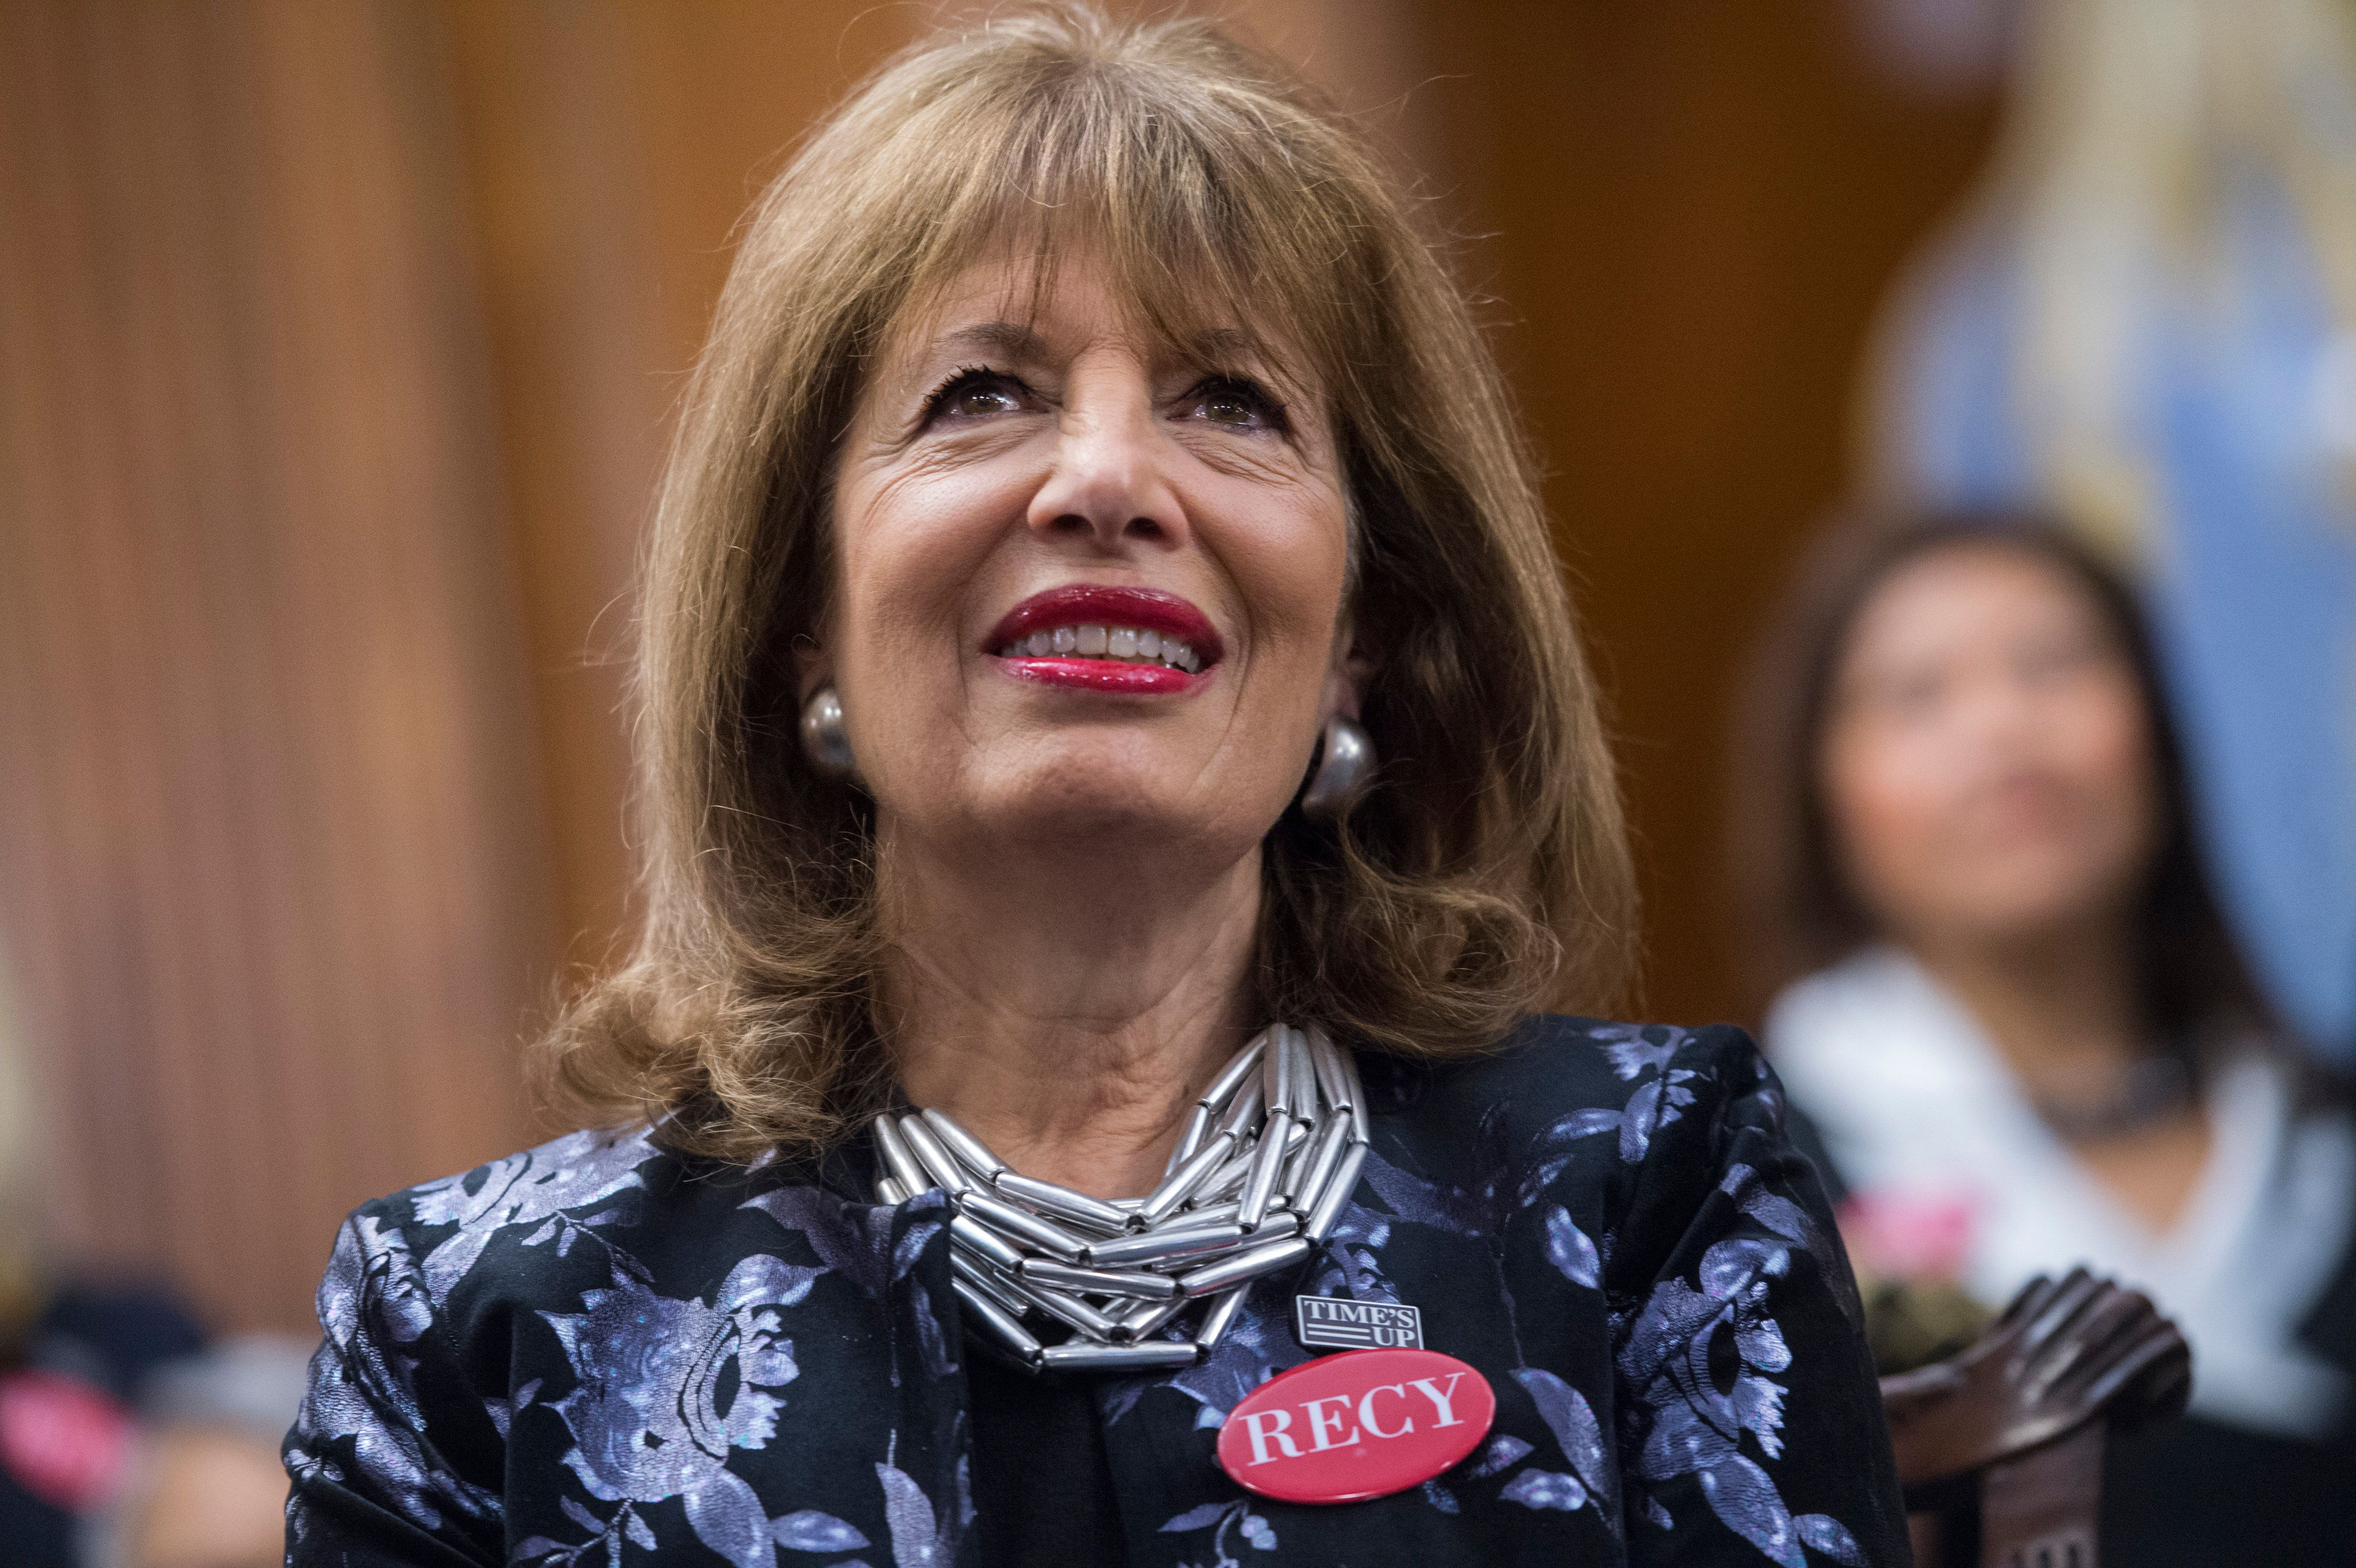 UNITED STATES - JANUARY 30: Rep. Jackie Speier, D-Calif., wears a pin featuring the name of sexual assault survivor Recy Taylor, during a photo op in the Capitol's Rayburn Room to show solidarity with men and women who are speaking out against sexual harassment and discrimination on January 30, 2018. (Photo By Tom Williams/CQ Roll Call)